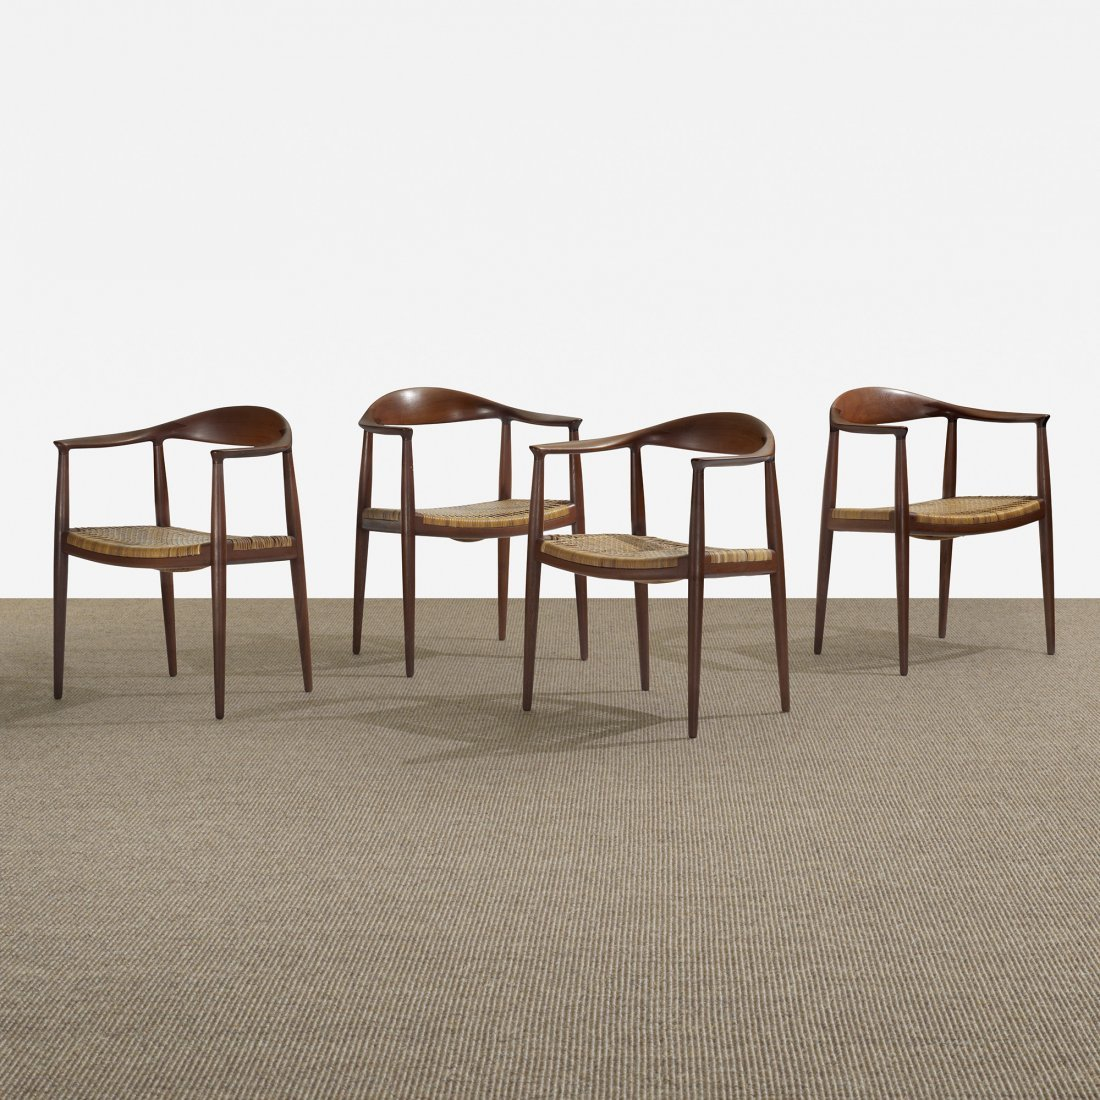 118: Hans Wegner The Chairs, set of four